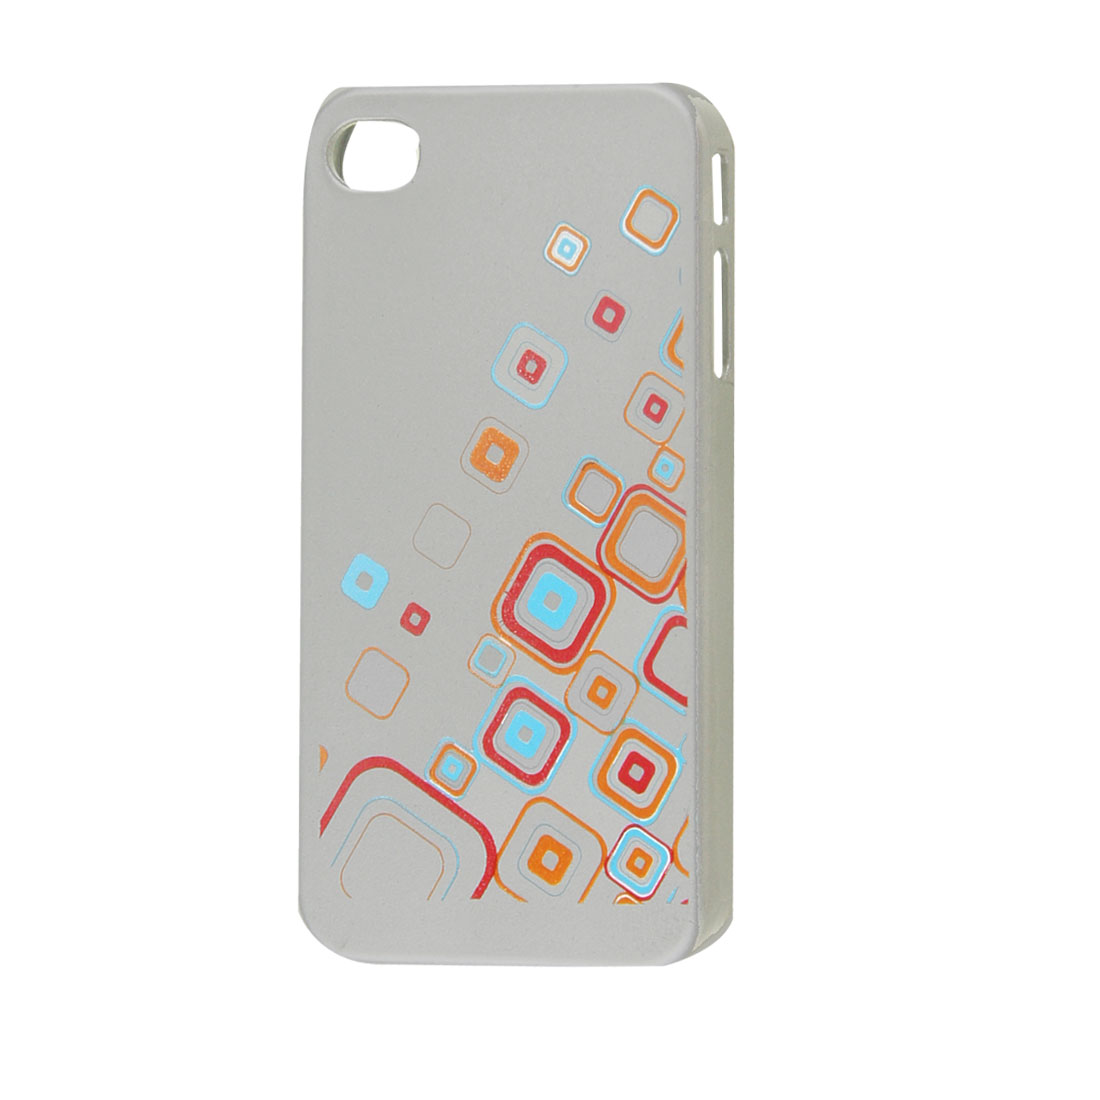 Silver Tone Hard Plastic Pane Prints Shell Case for iPhone 4 4S